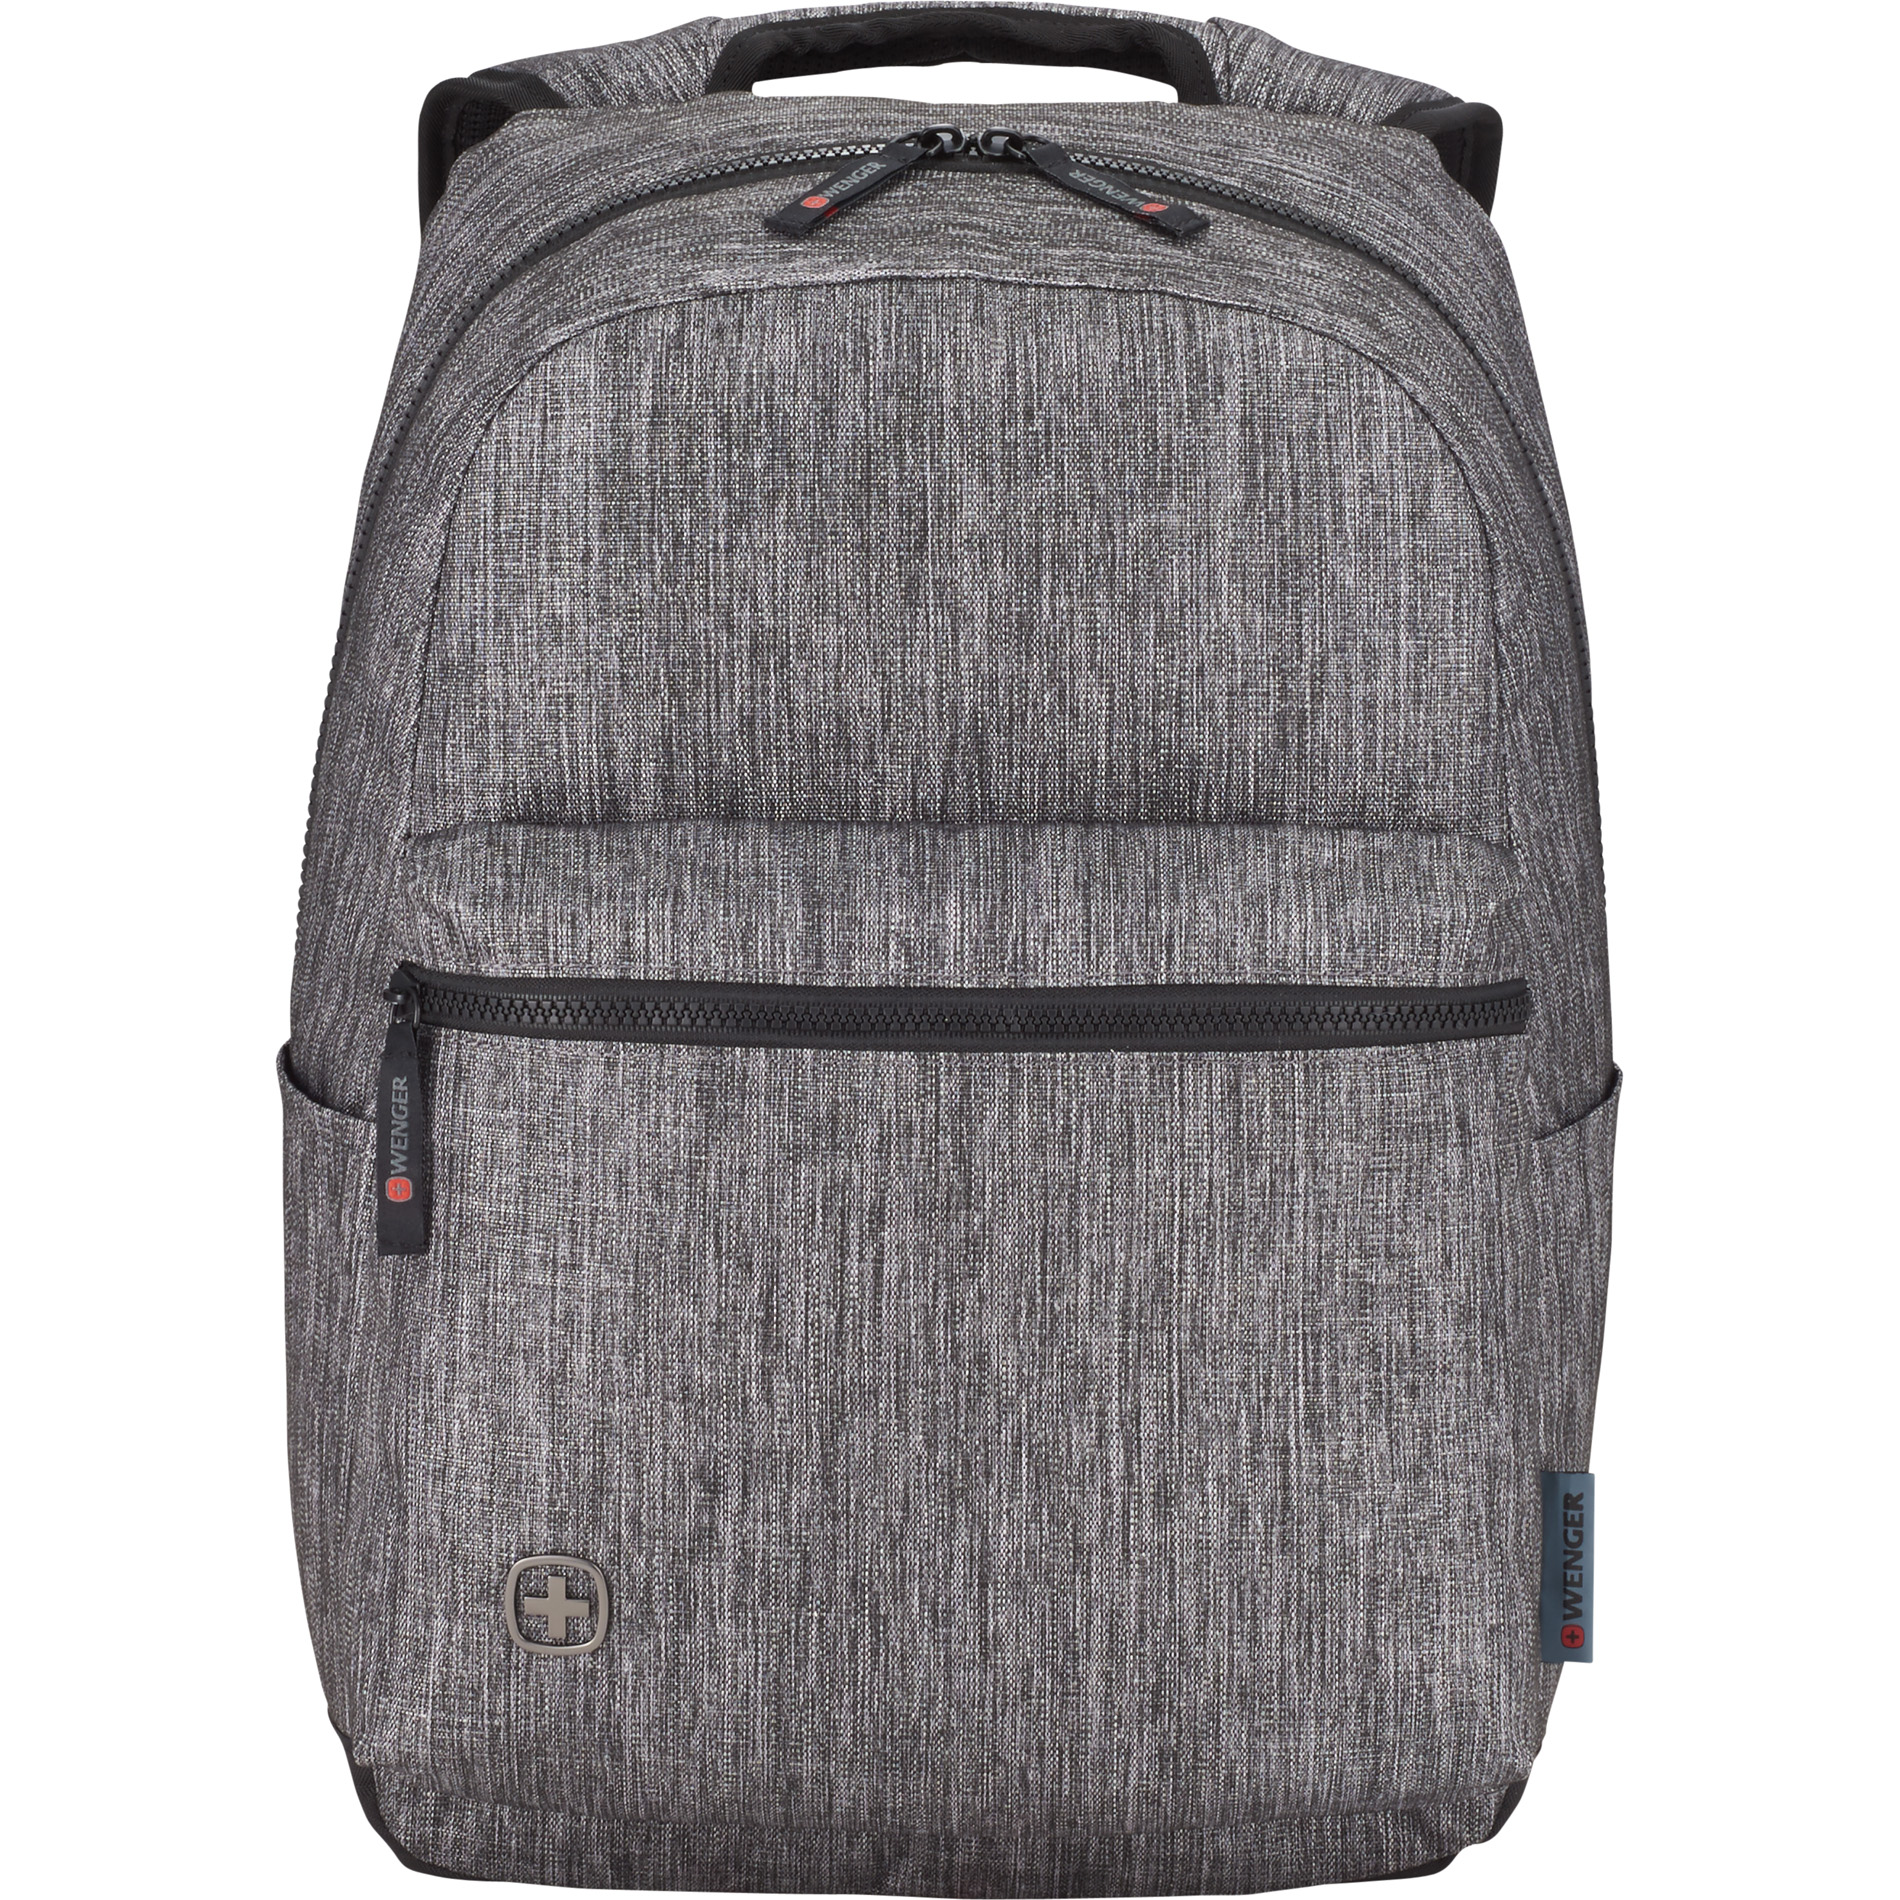 "Wenger 9550-53 - Site 15"" Computer Backpack"